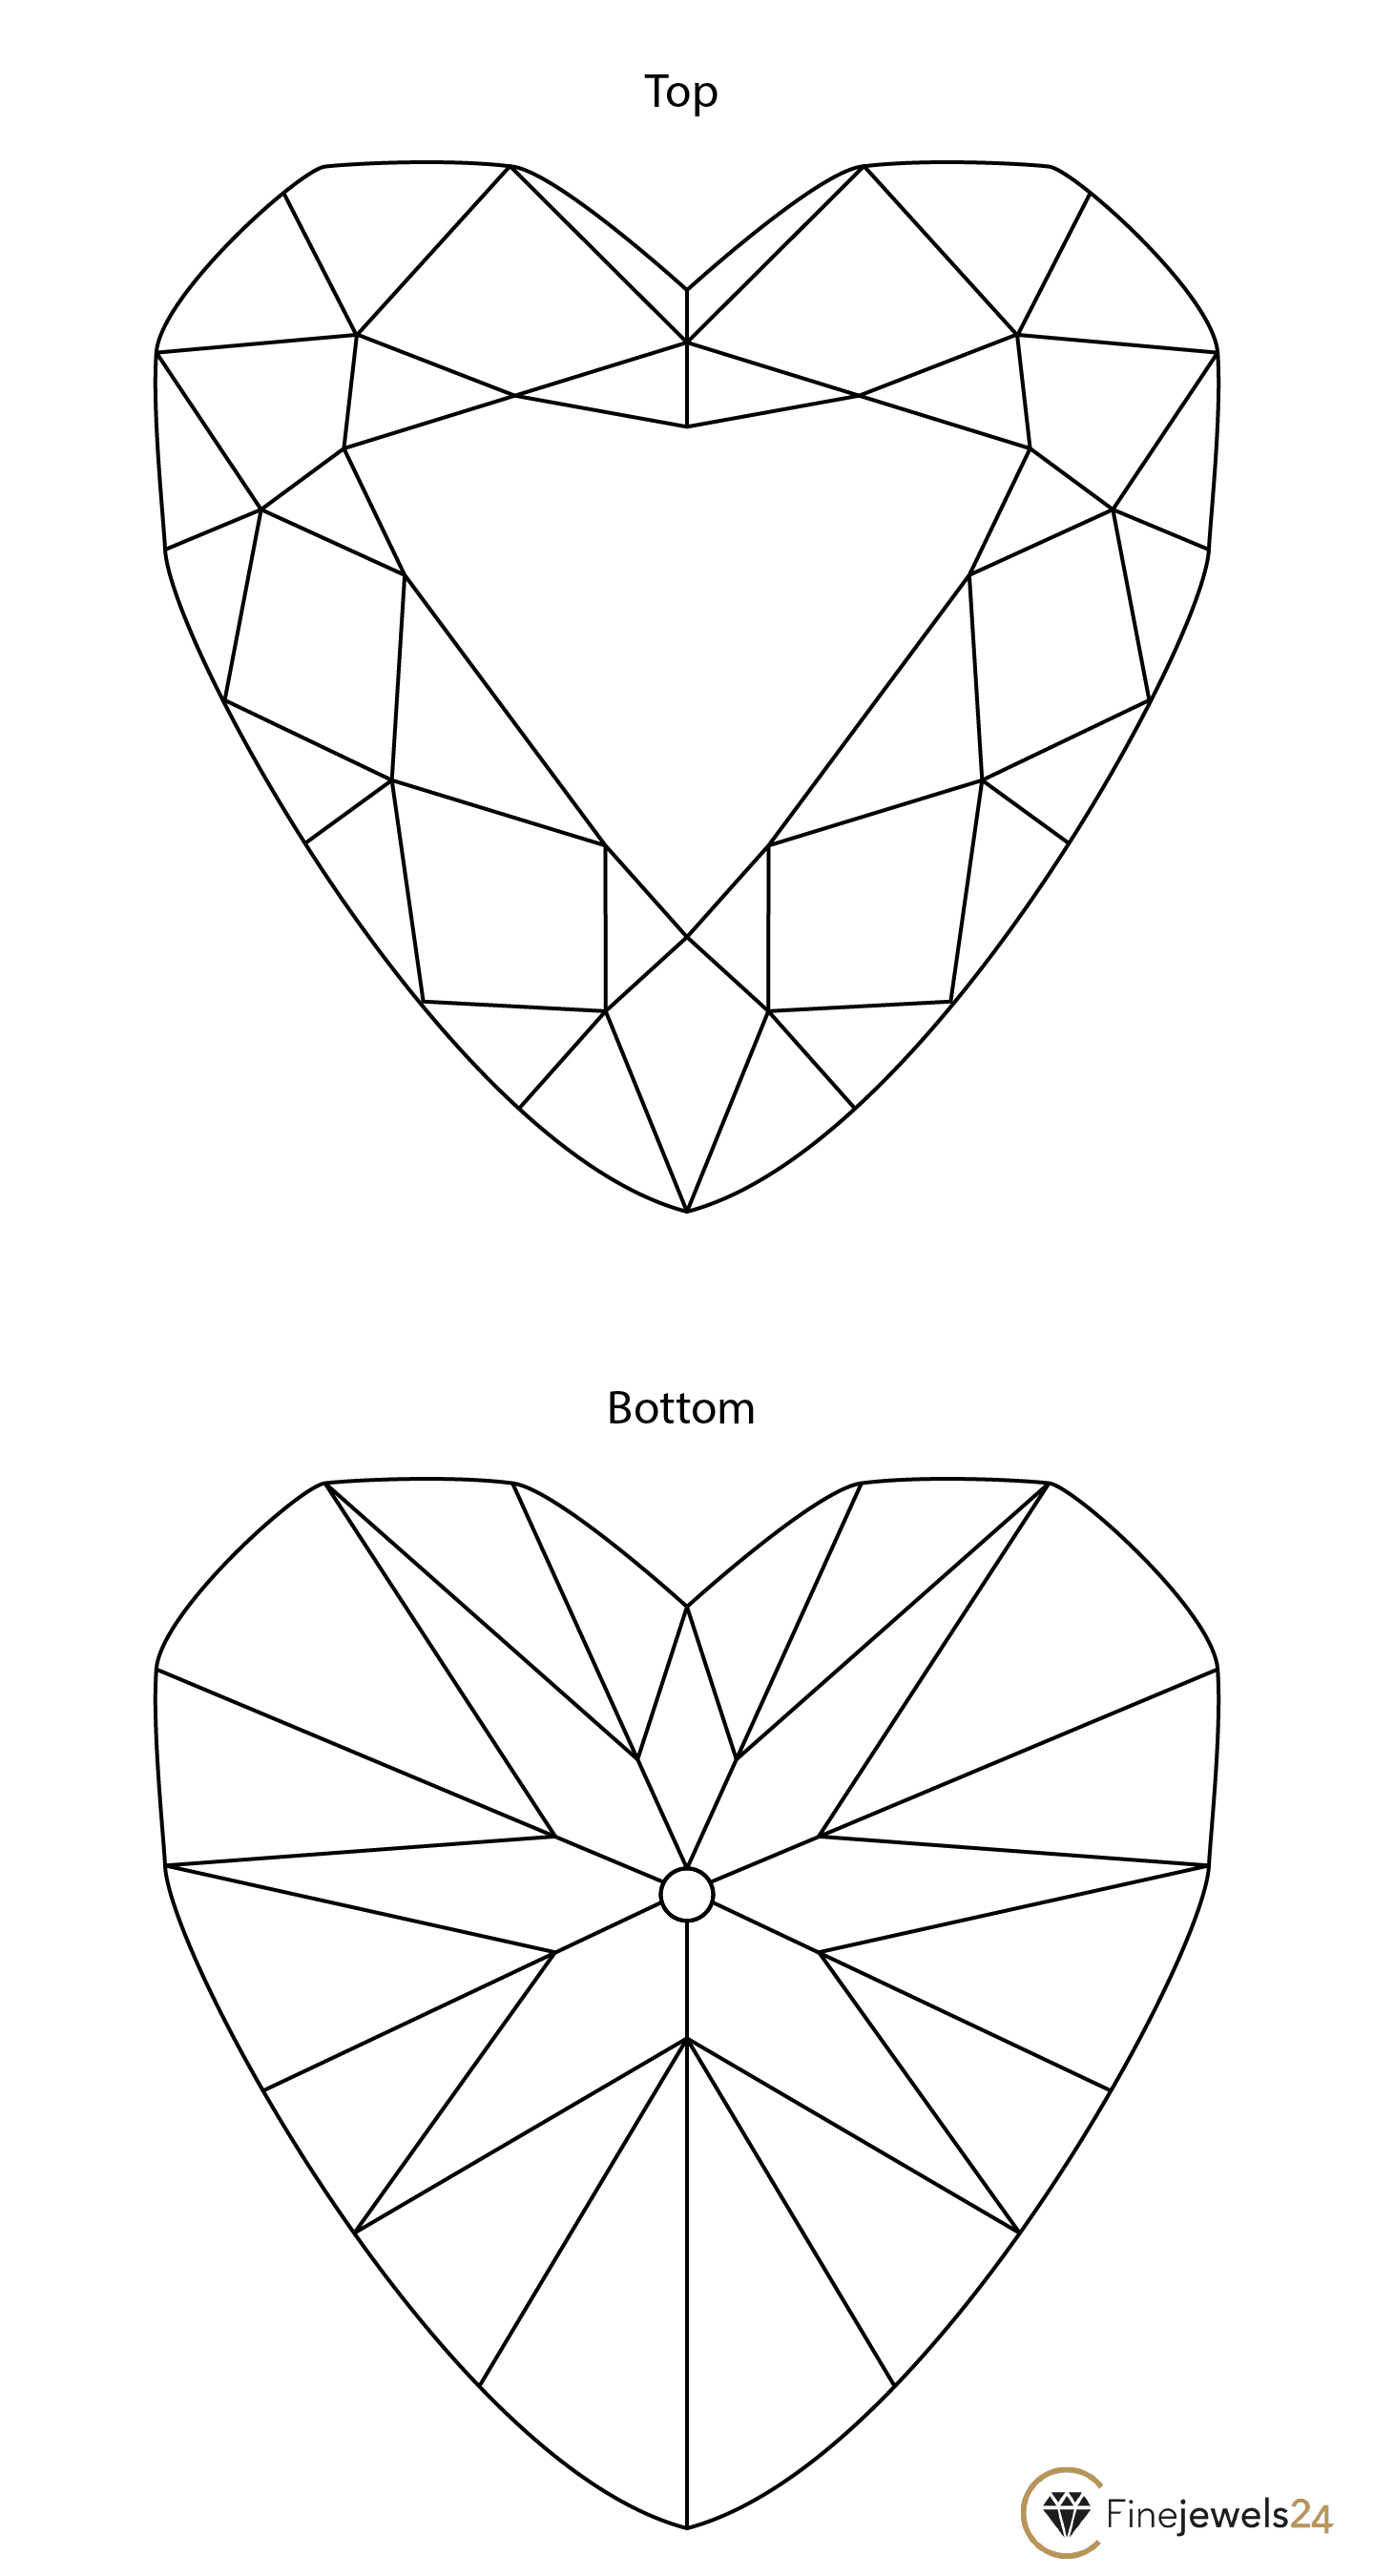 Heart cut sketches of top and bottom view